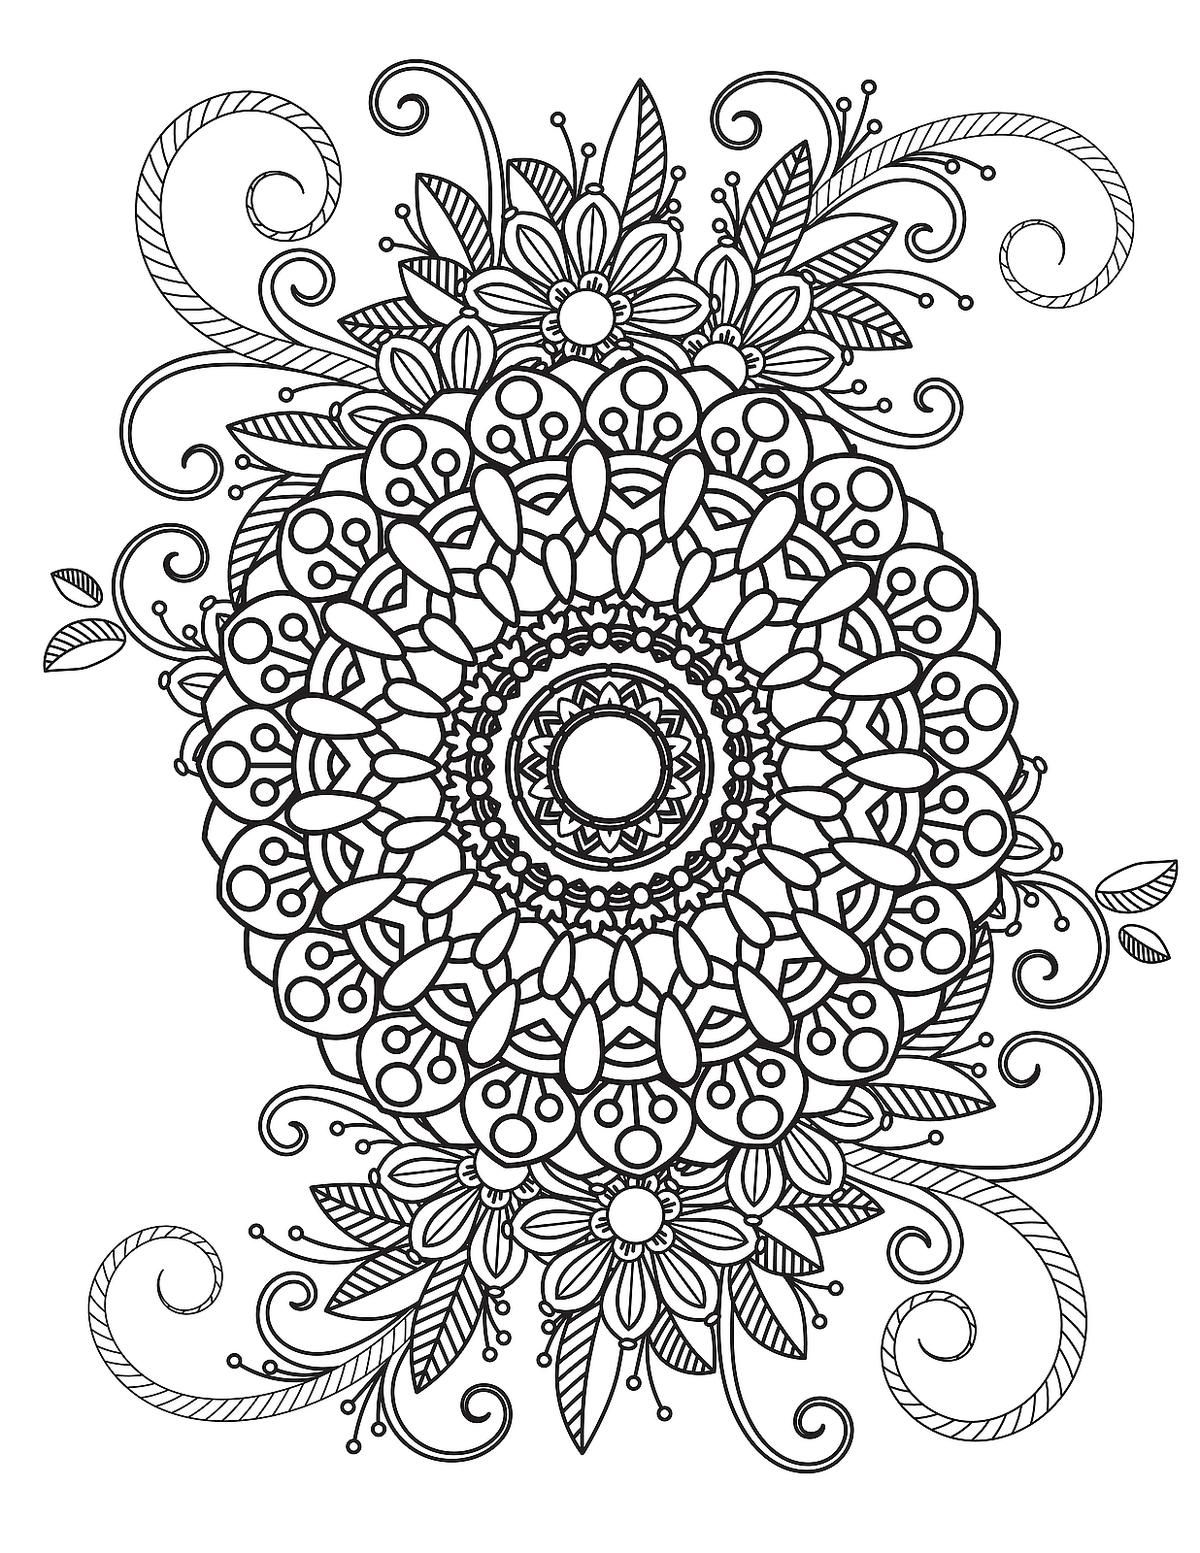 Mandala Coloring Pages Free Printable Coloring Pages Of Mandalas For Adults Kids Printables 30seconds Mom In 2021 Mandala Coloring Books Mandala Coloring Pages Mandala Coloring